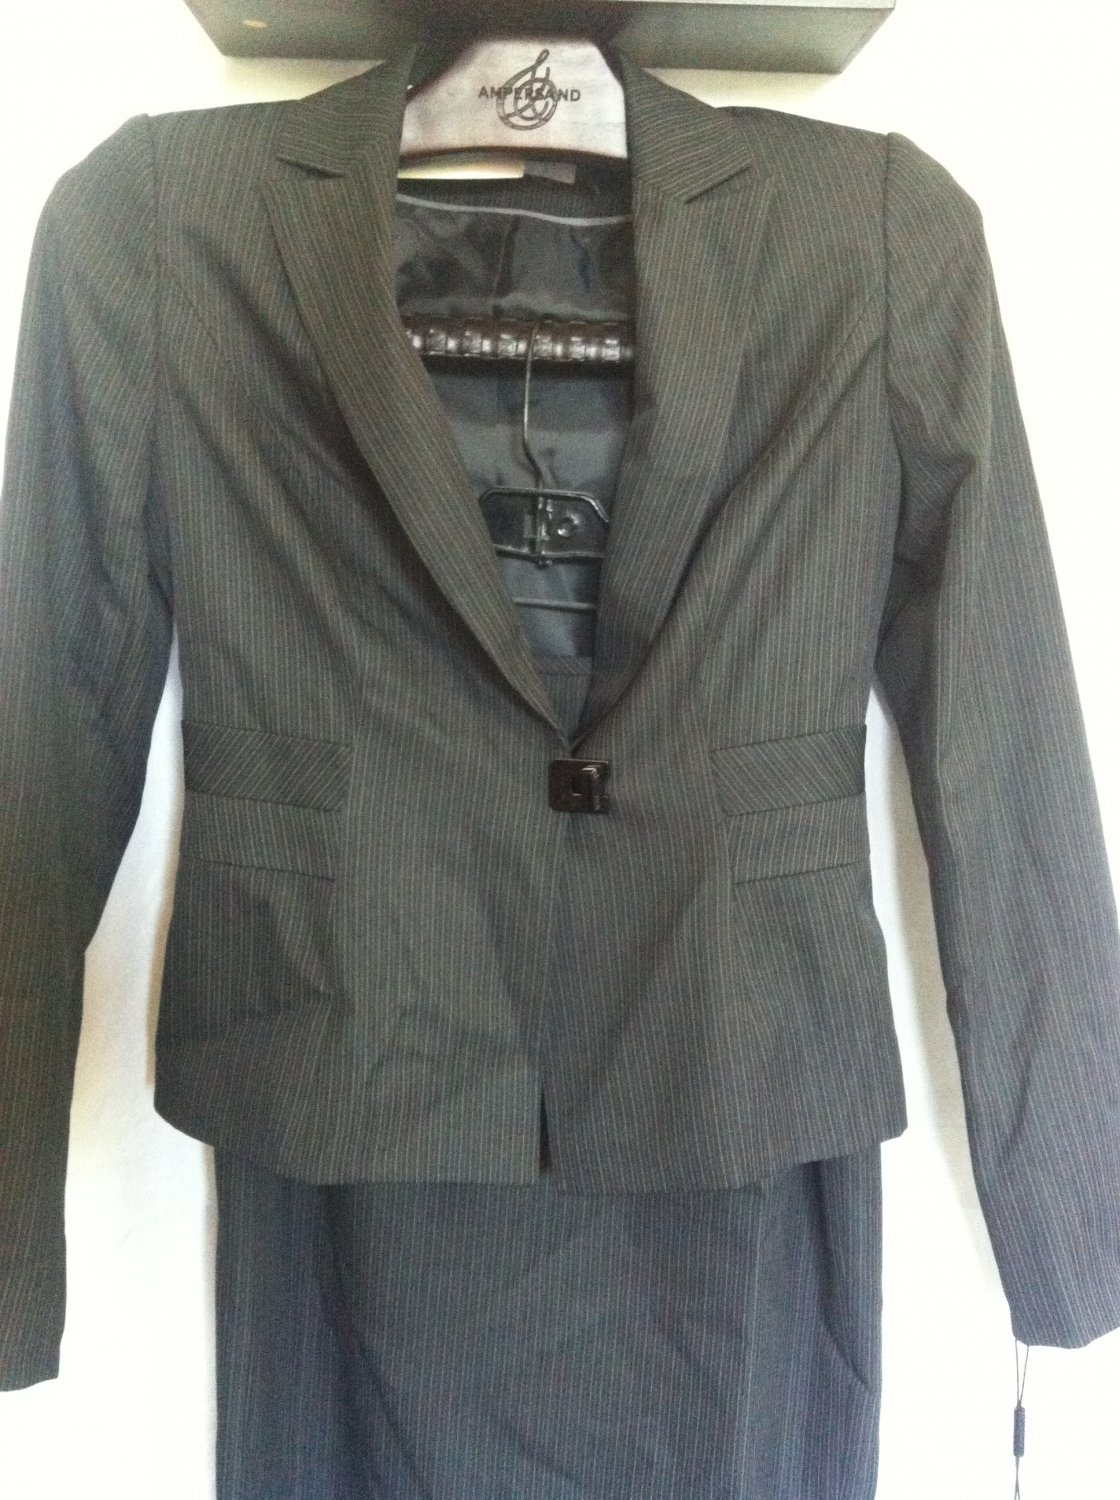 Calvin Klein CS1N6973 2pcs Suit Set Charcoal White Strip Size2